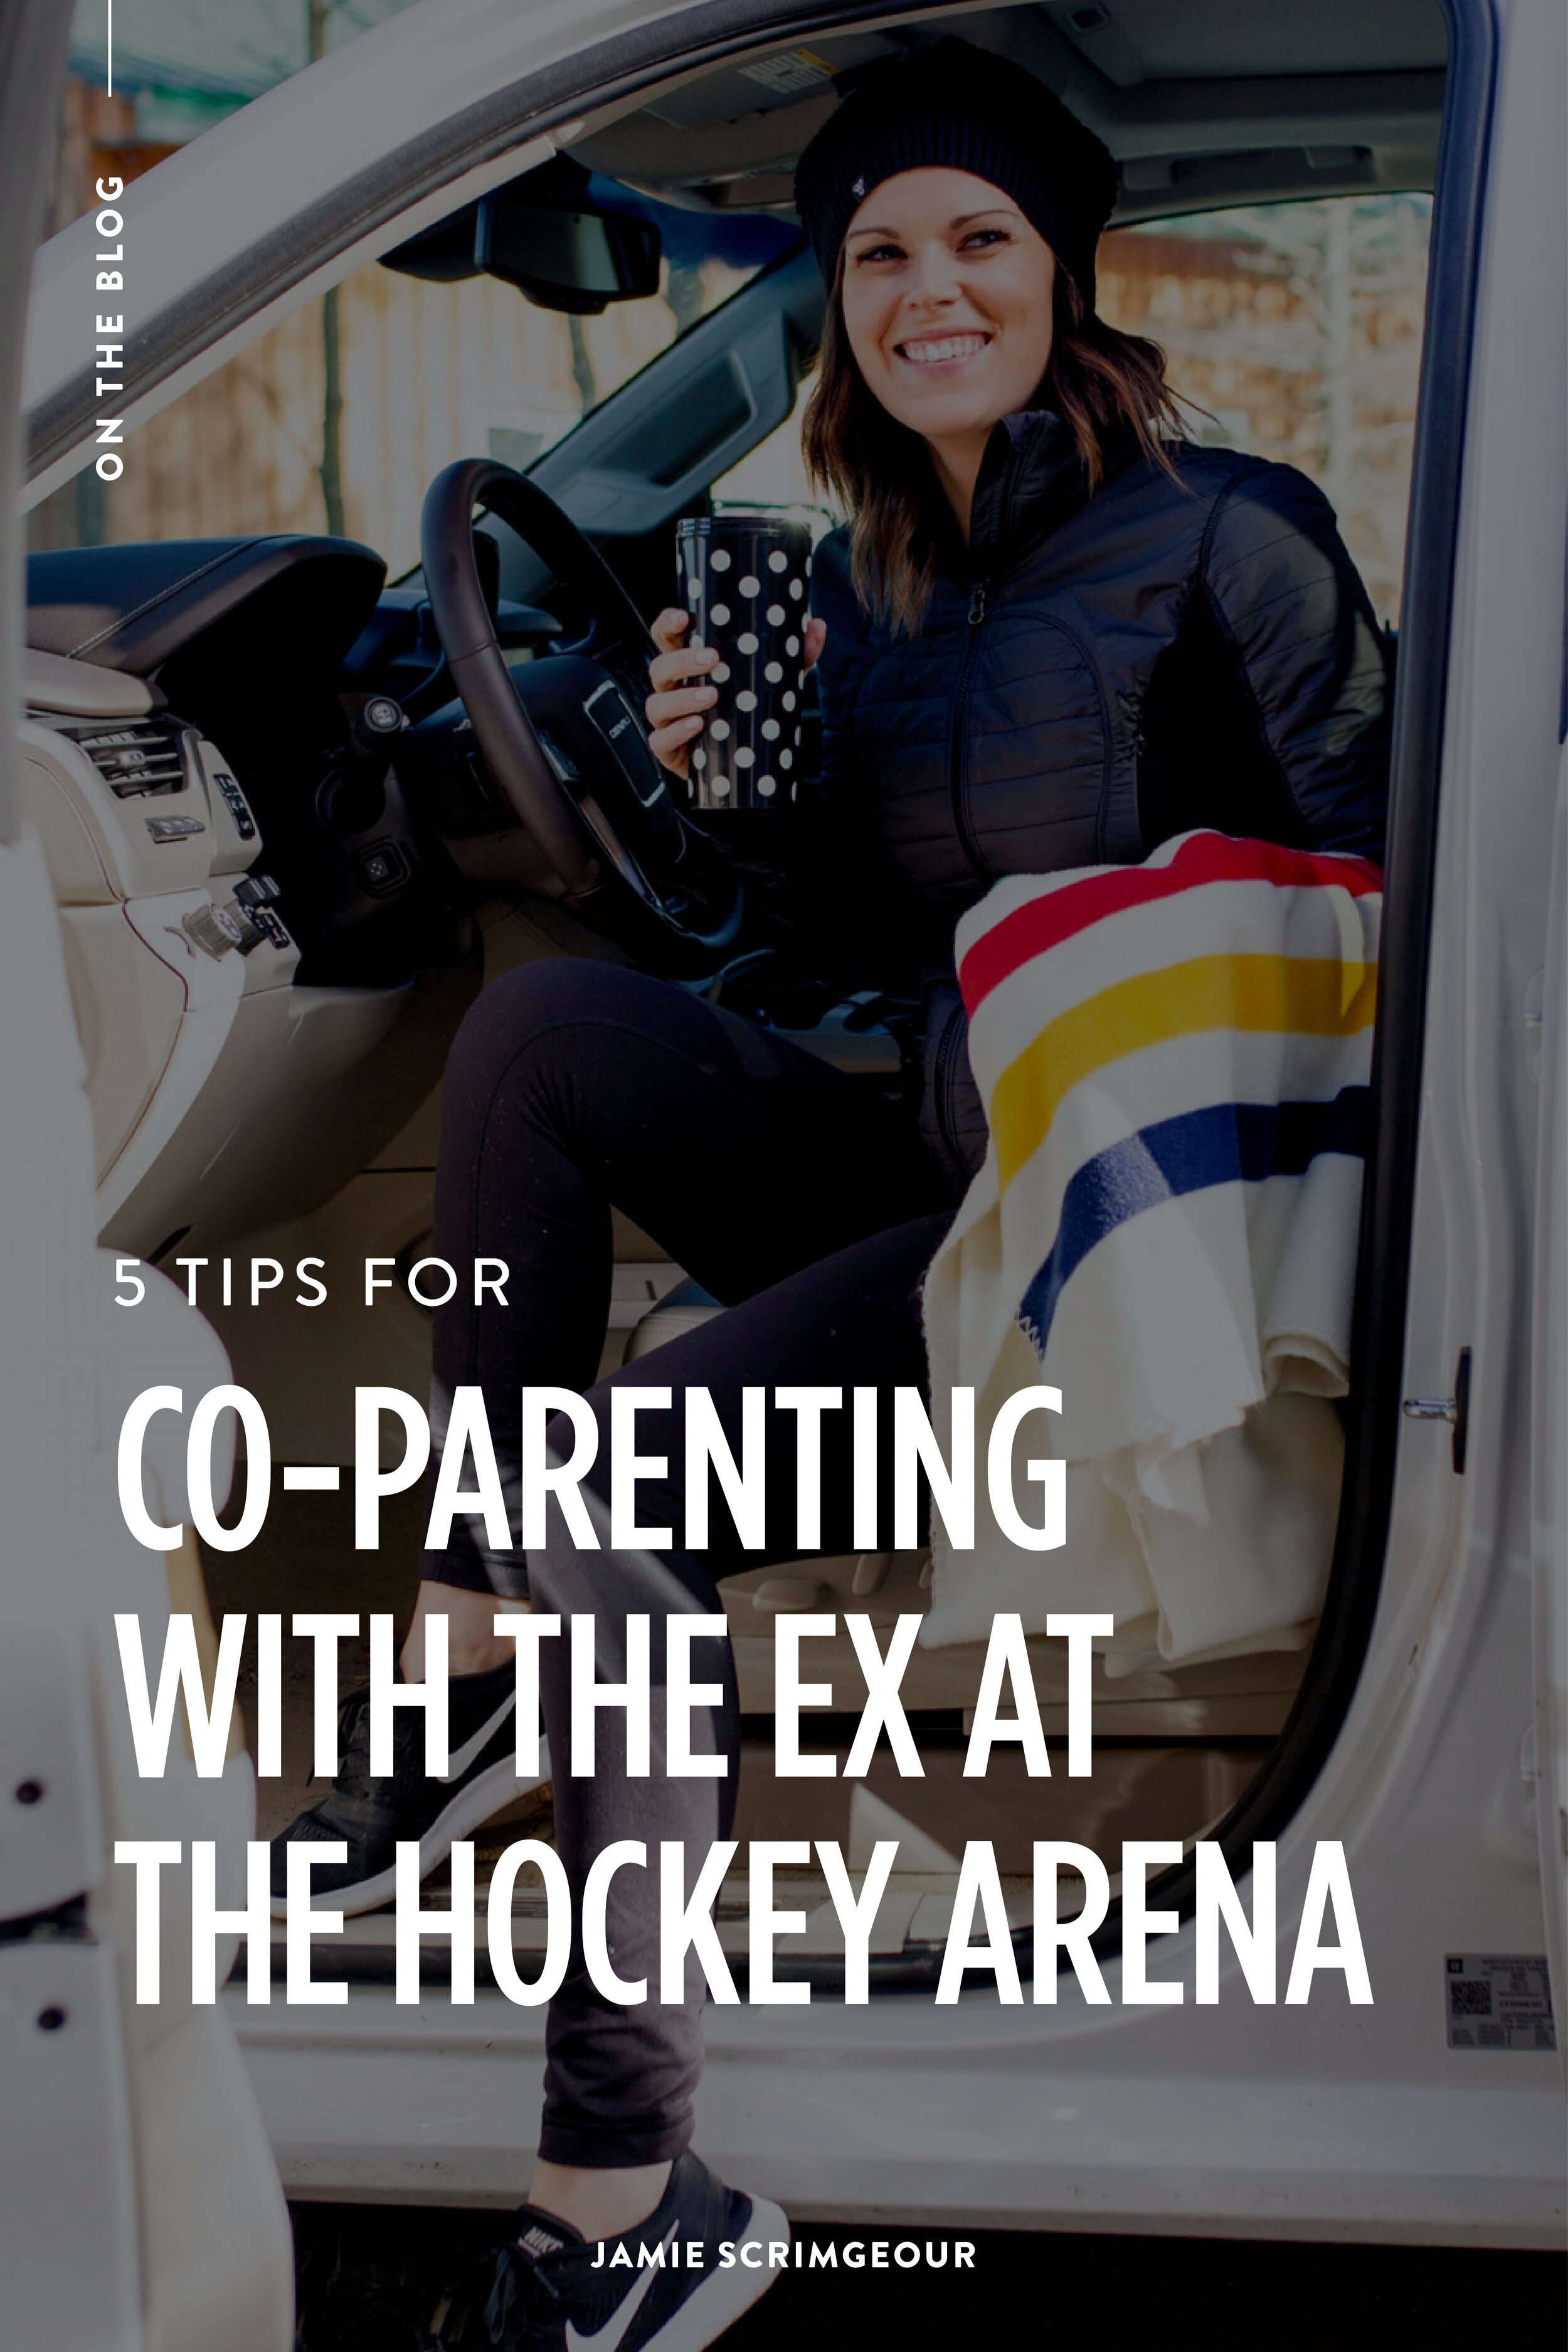 Jamie Scrimgeour - Co-Parenting With The Ex At The Hockey Arena - Stepmom Support